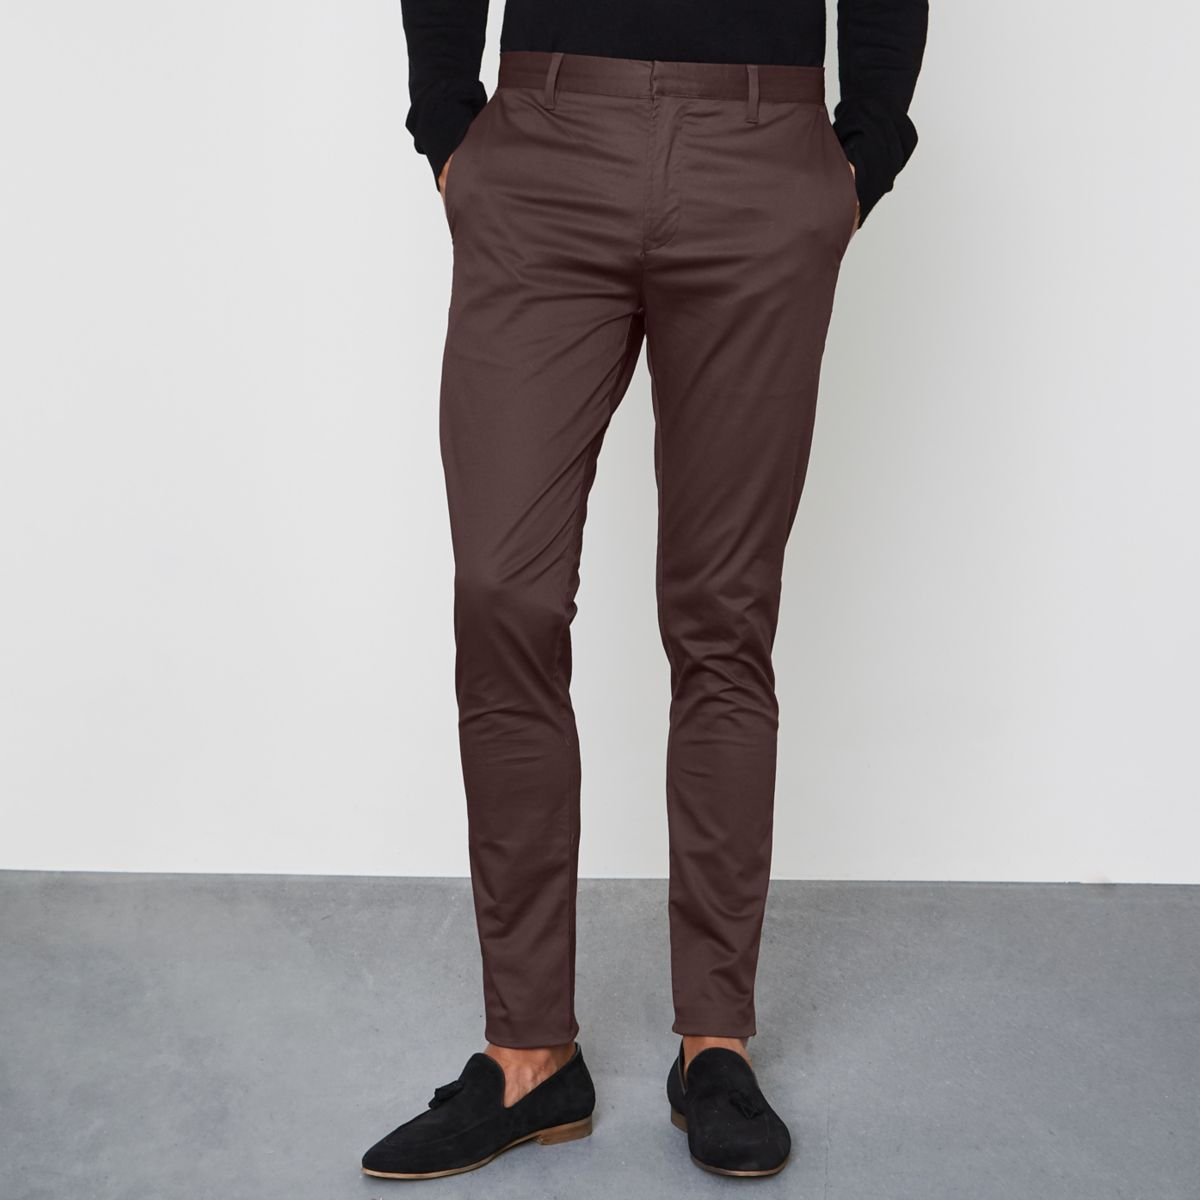 Mens Pants at Macy's come in all styles and sizes. Shop Men's Pants: Dress Pants, Chinos, Khakis, pants and more at Macy's! Macy's Presents: The Edit- A curated mix of fashion and inspiration Check It Out. Calvin Klein Men's Sateen Slim-Fit Stretch Pants.